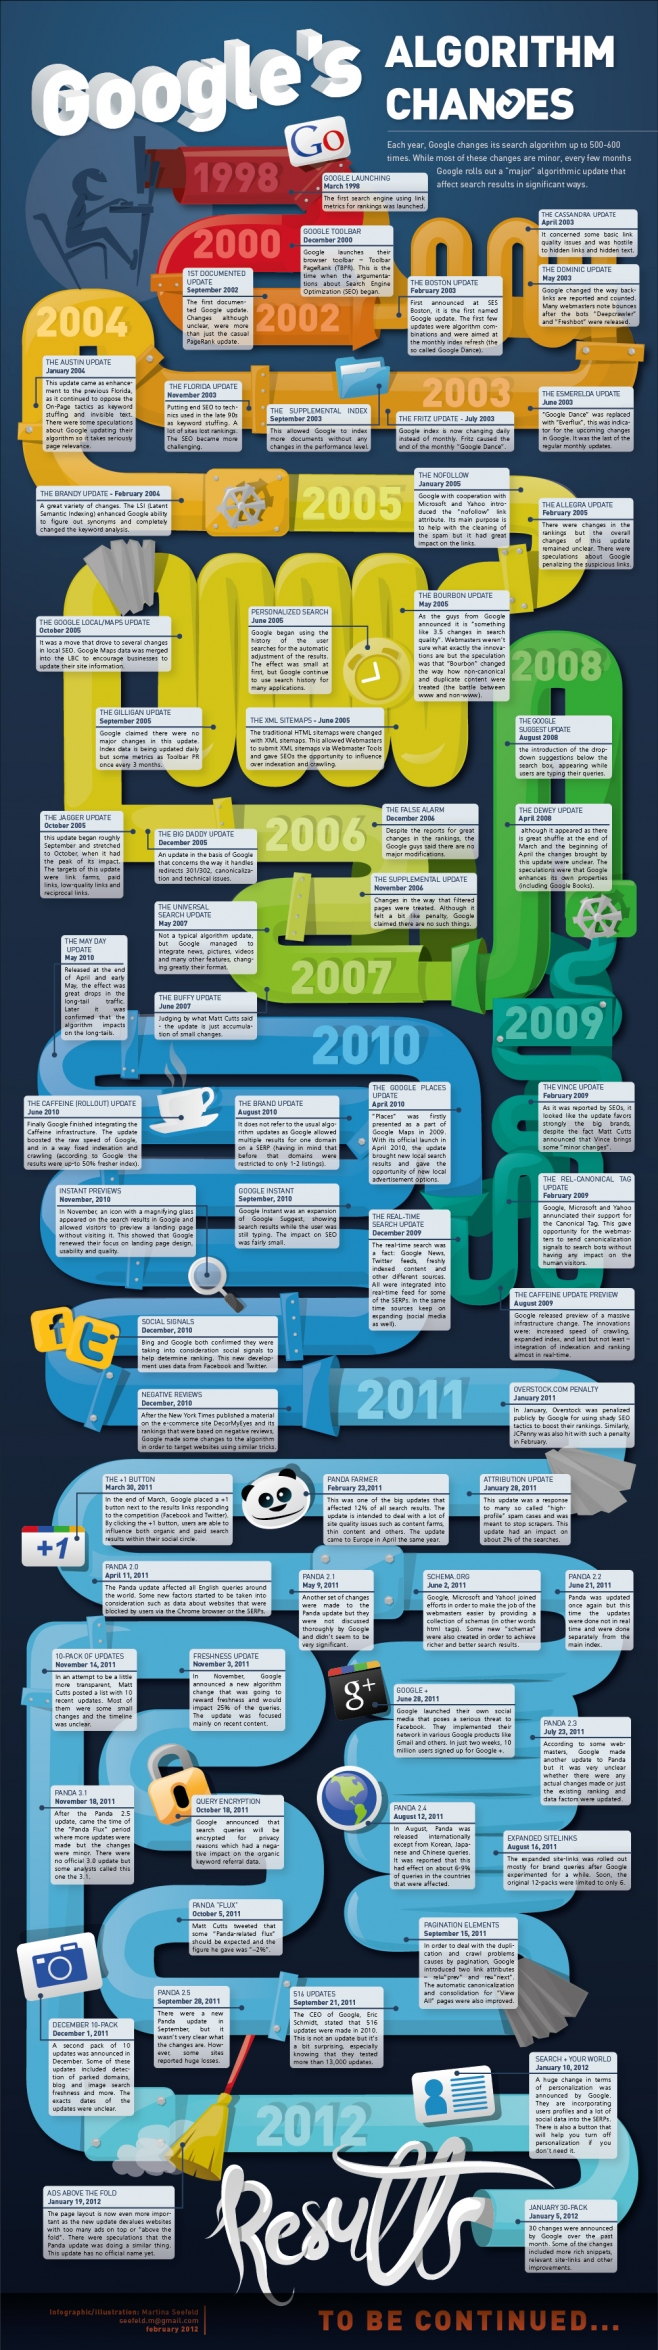 Google's algorithm changes #infographic